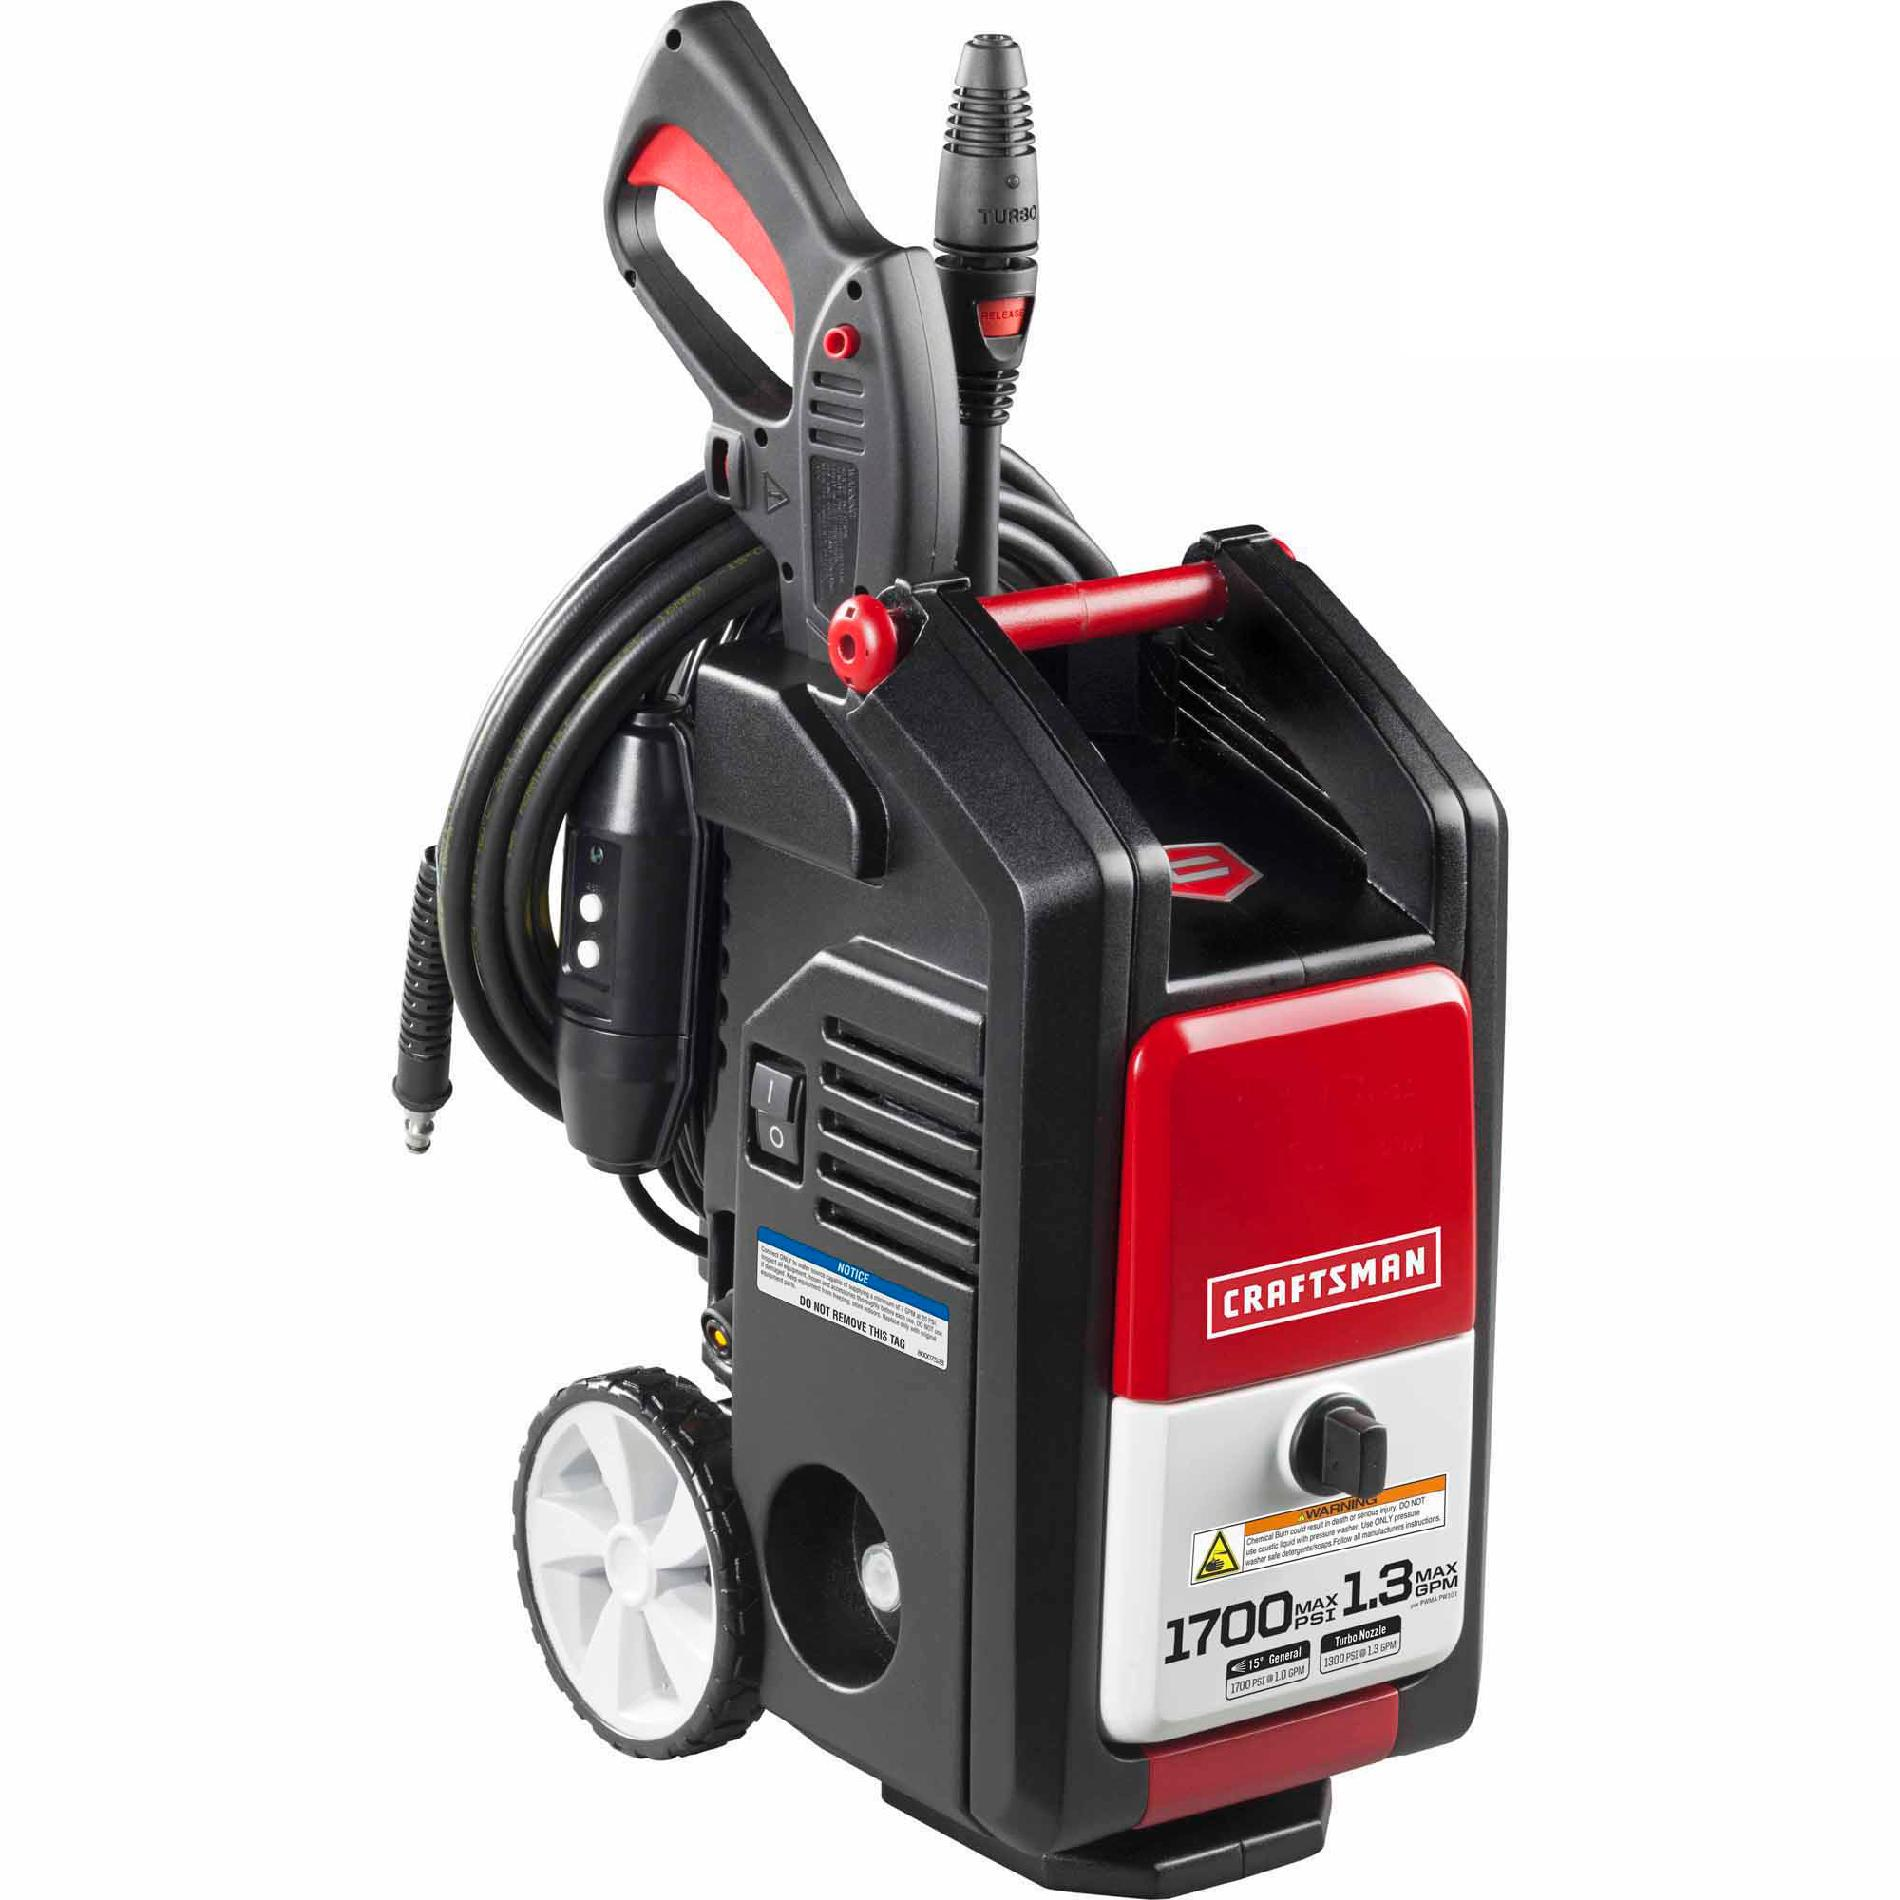 Craftsman 1700psi 1.3GPM Electric Pressure Washer (Non CA)